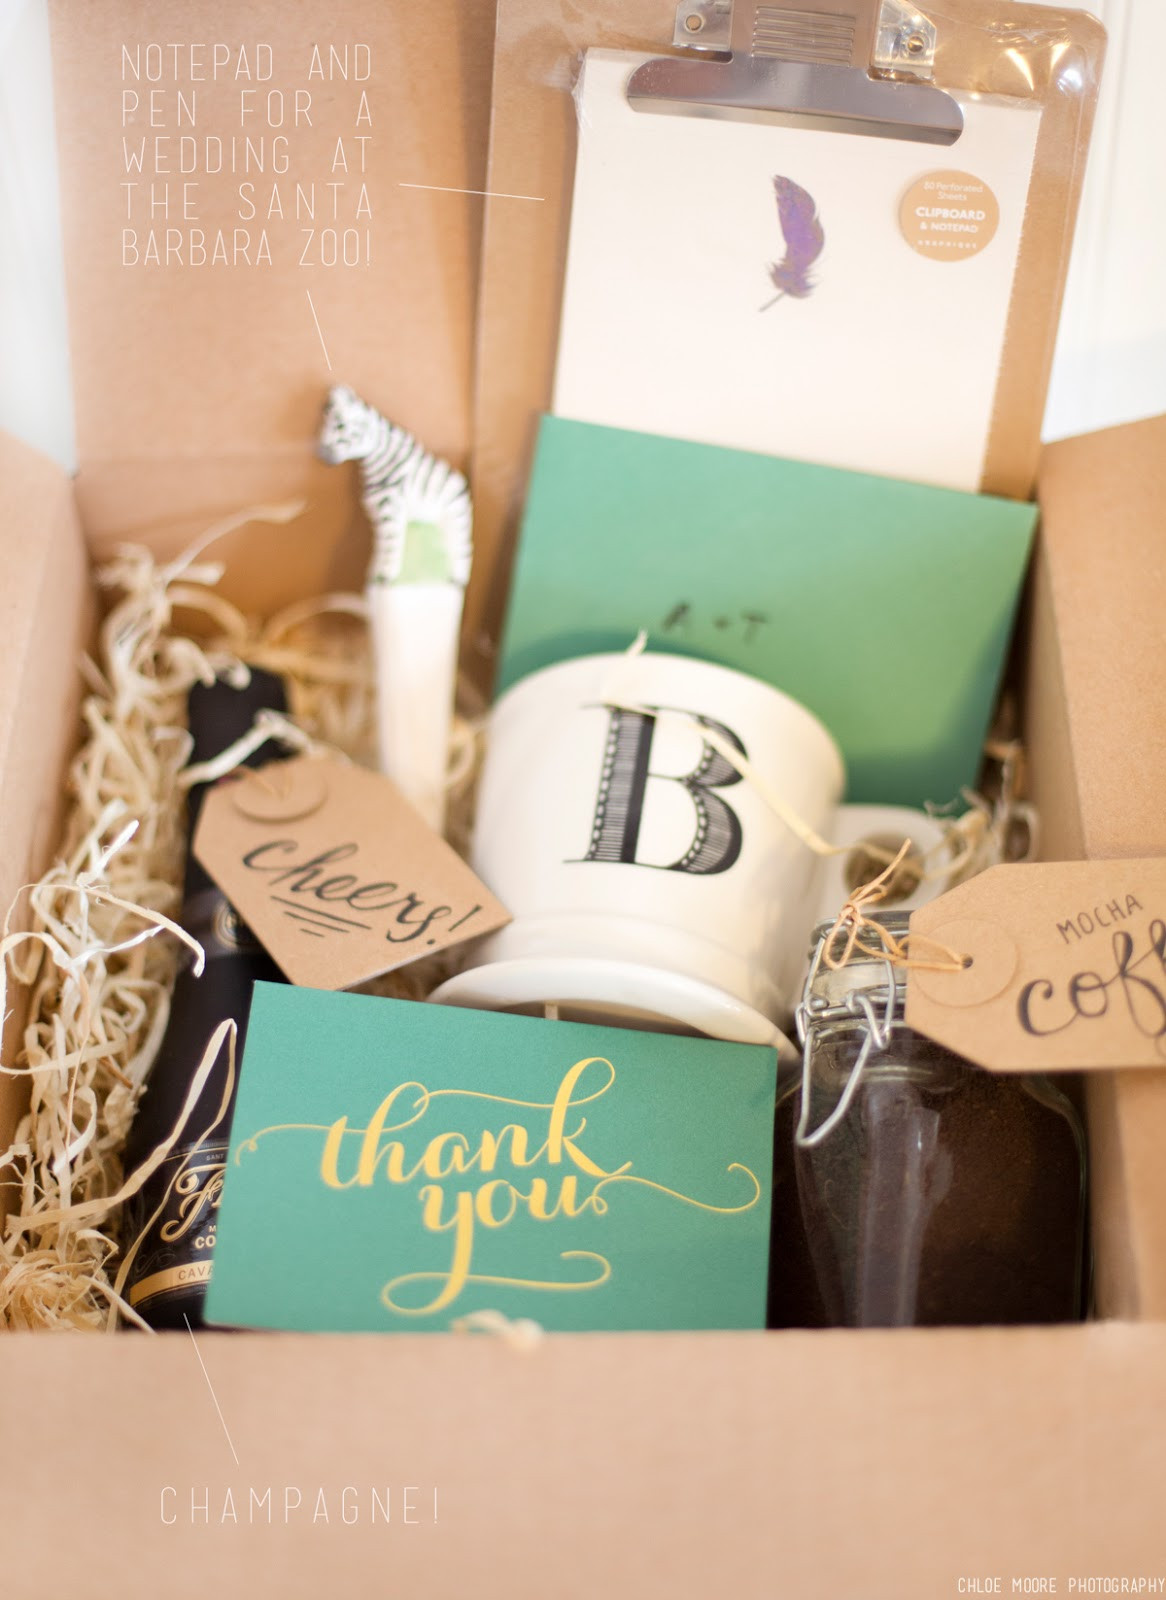 Best ideas about Client Gift Ideas . Save or Pin Chloe Moore graphy The Blog New Client Gift Packages Now.